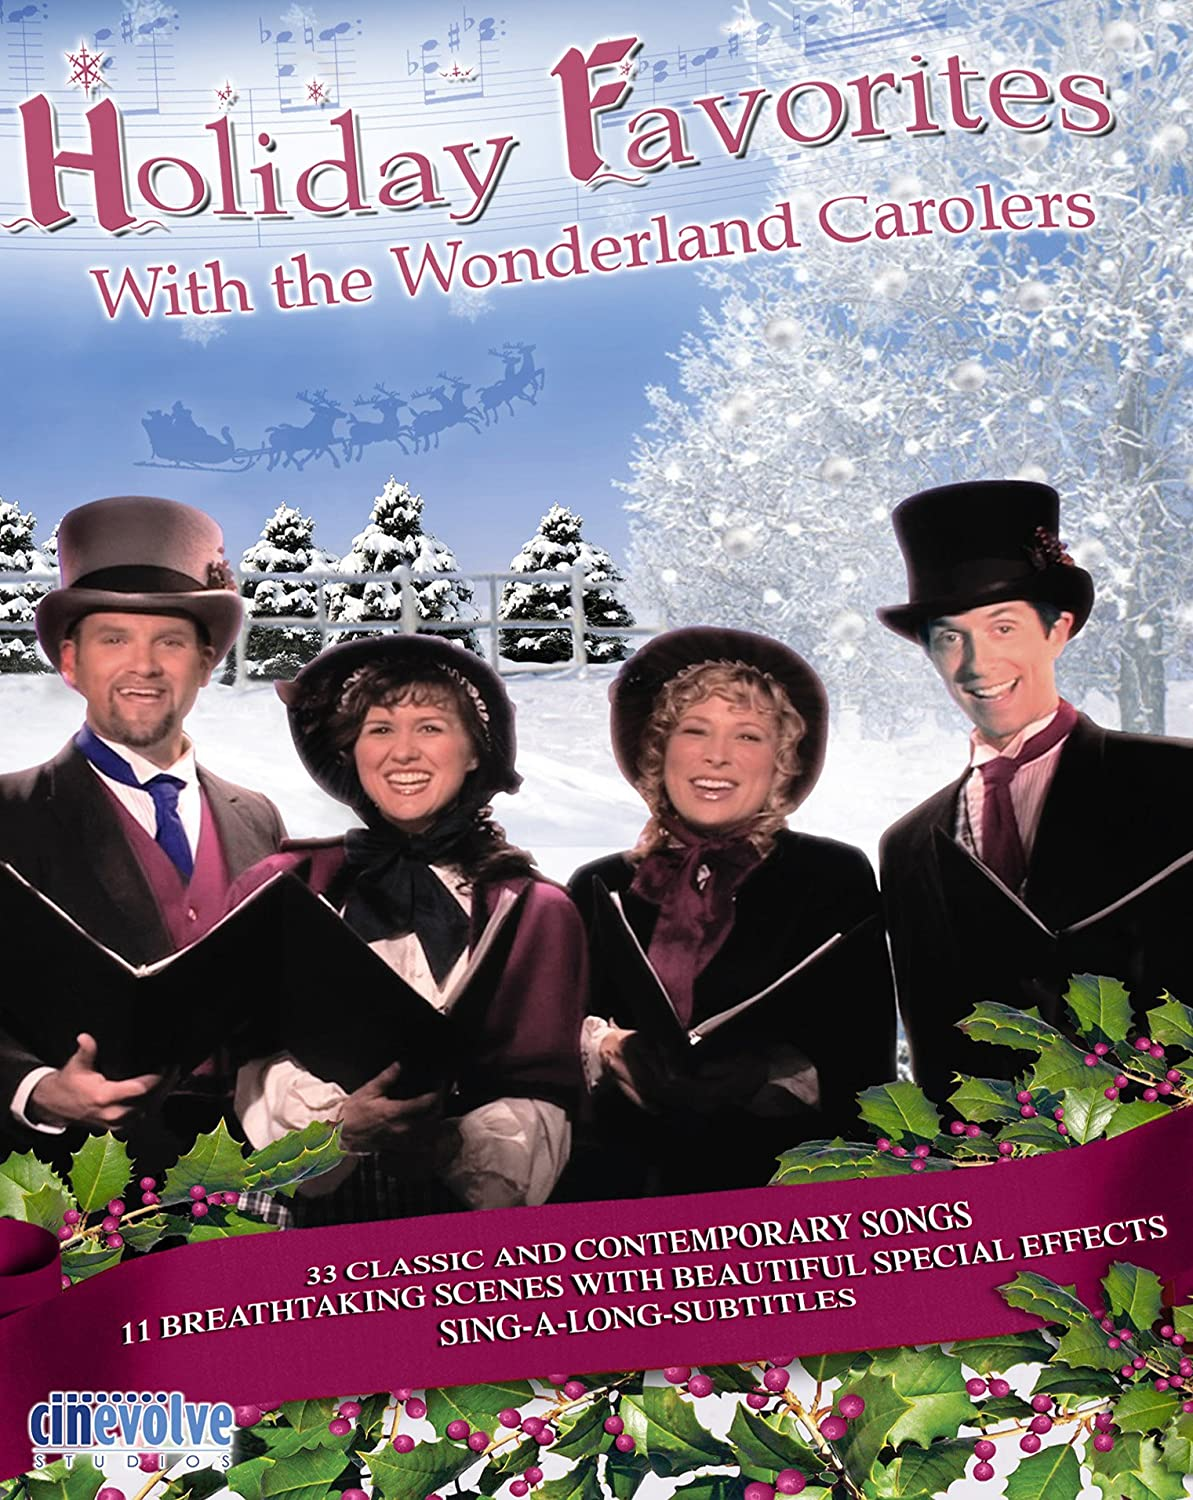 Holiday Boston Mall Favorites with the Wonderland Blu-ray Over item handling Carolers